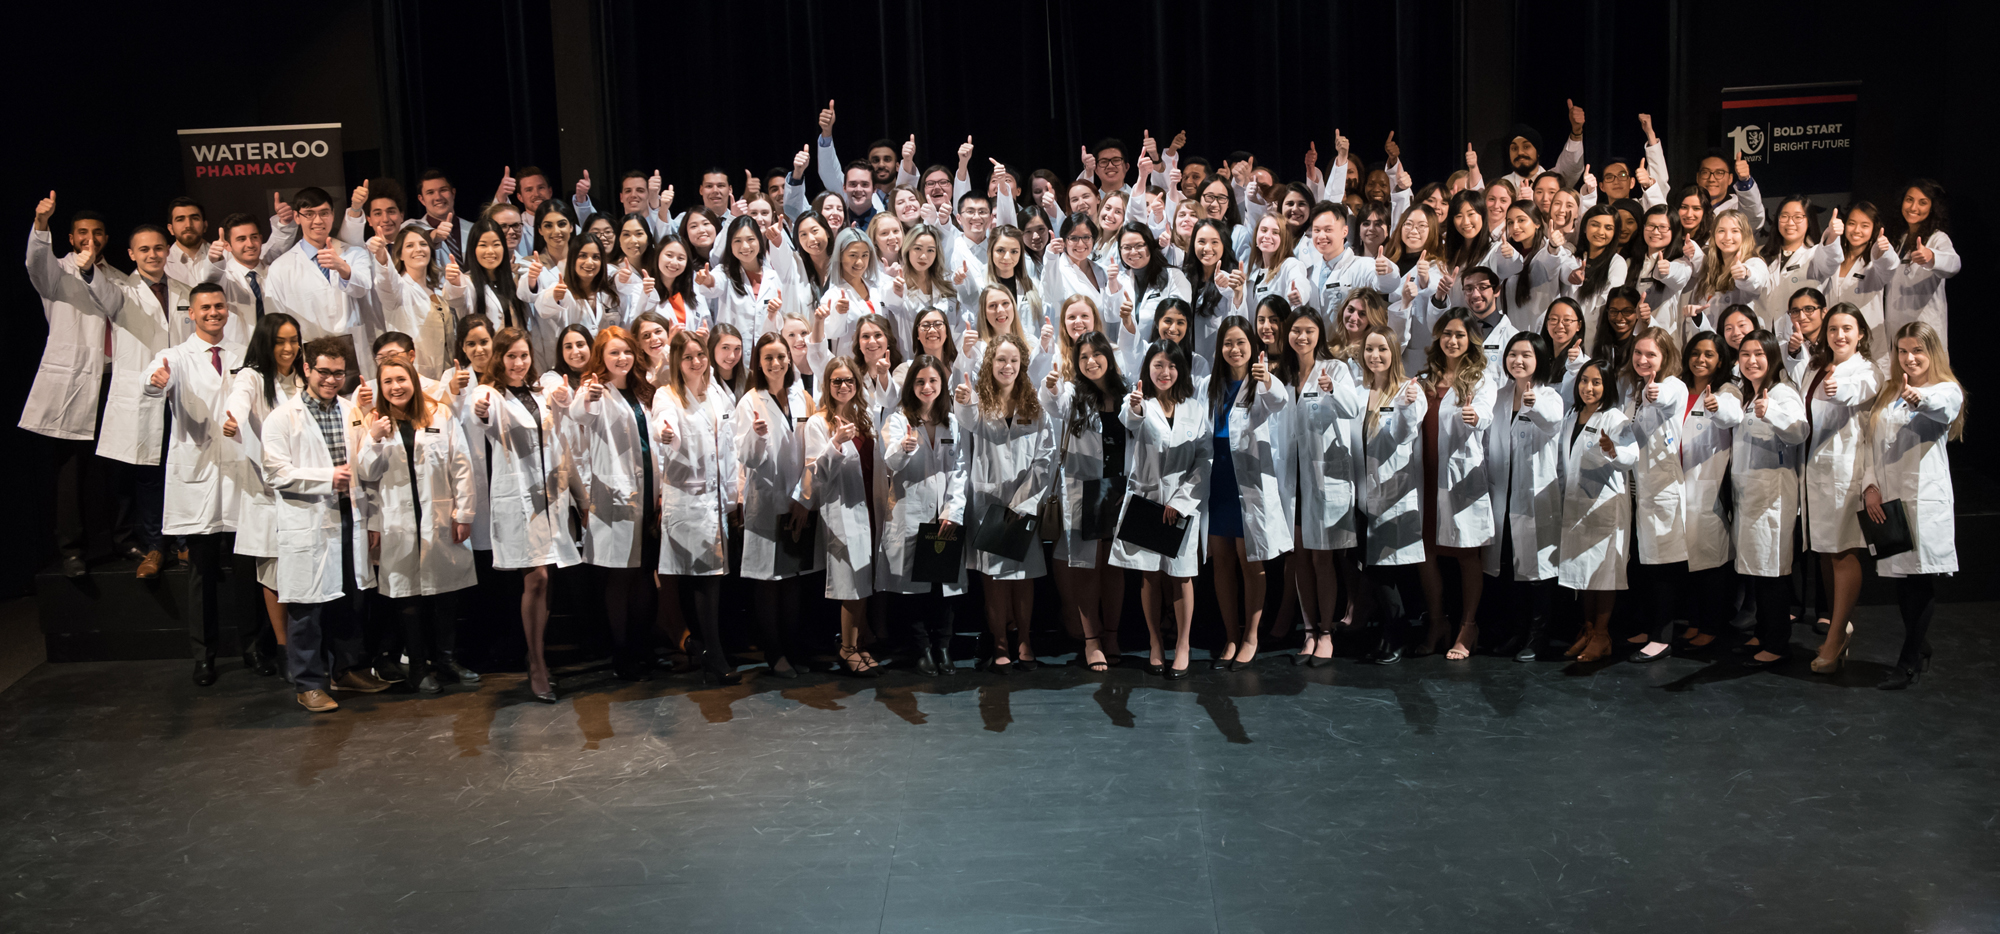 School of Pharmacy's Class of Rx2021 at the White Coat Ceremony.